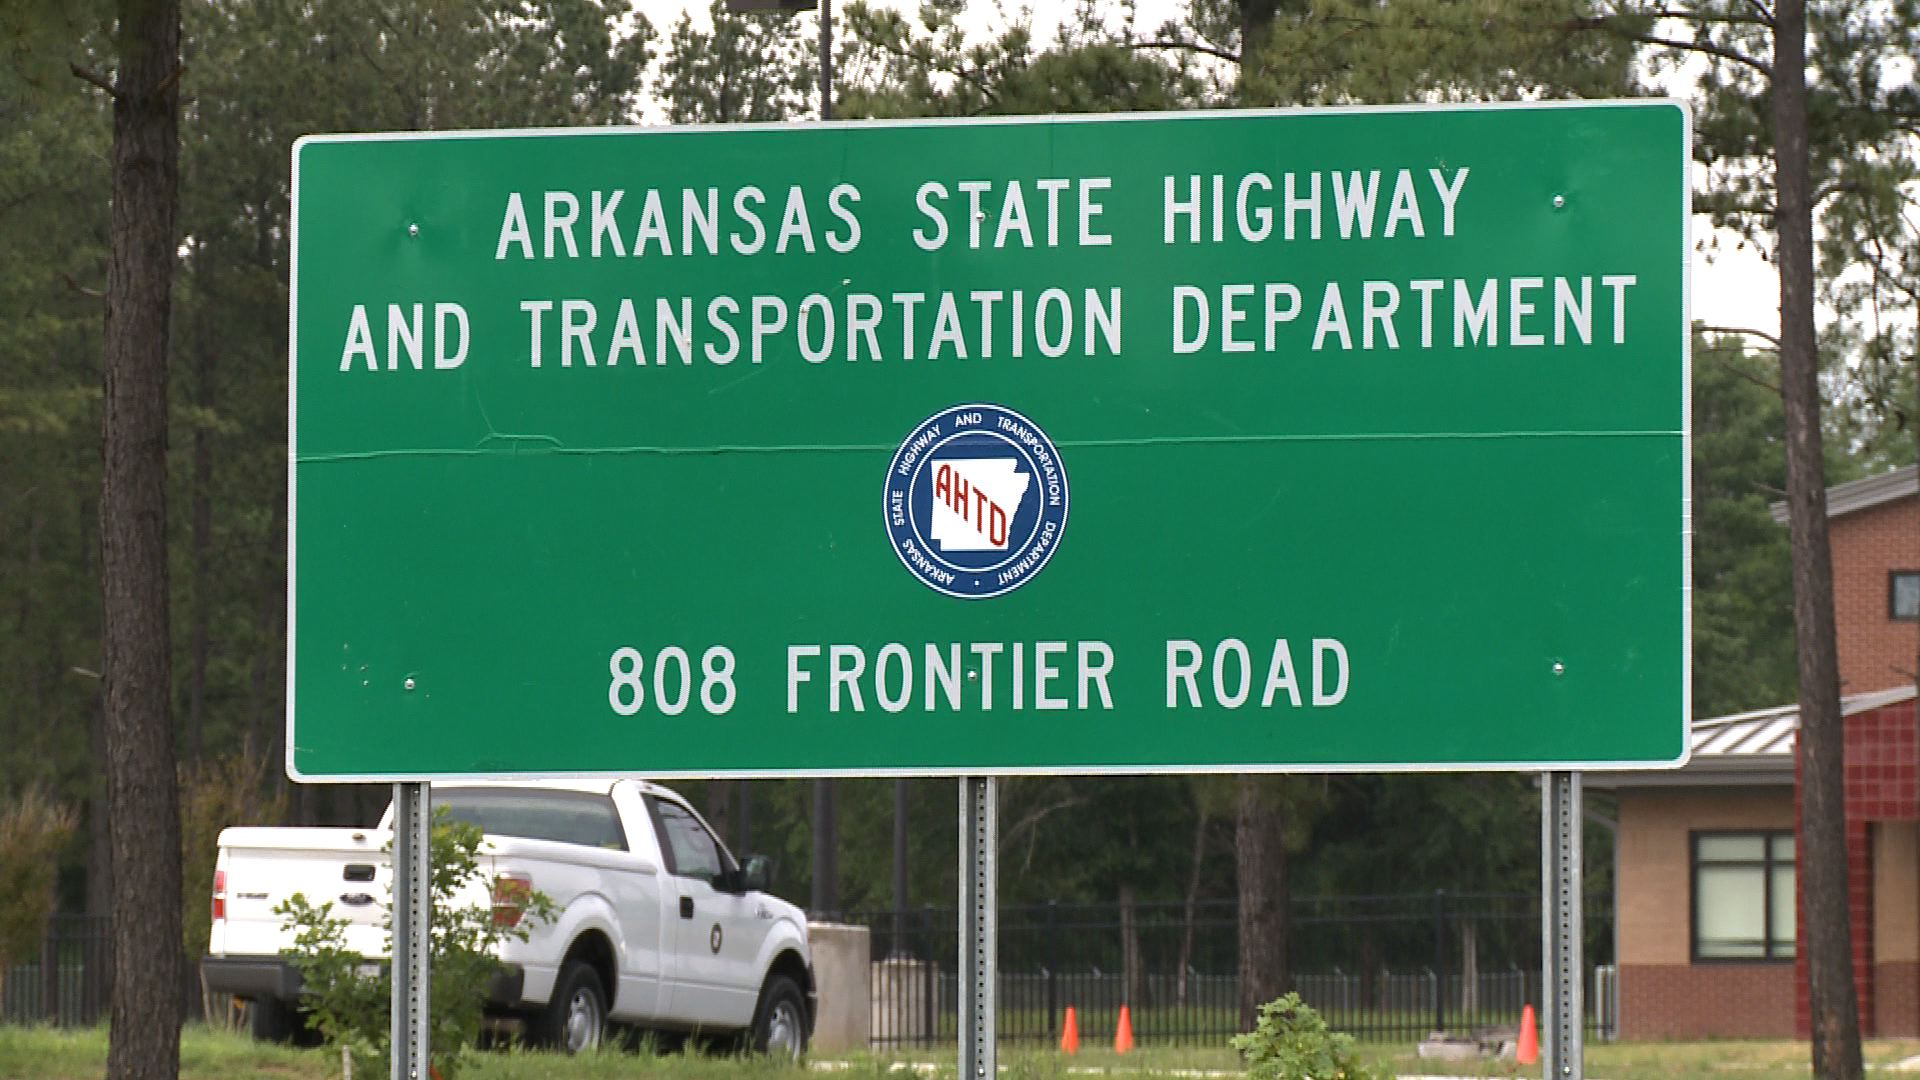 Arkansas State Highway And Transportation Department To Relocate